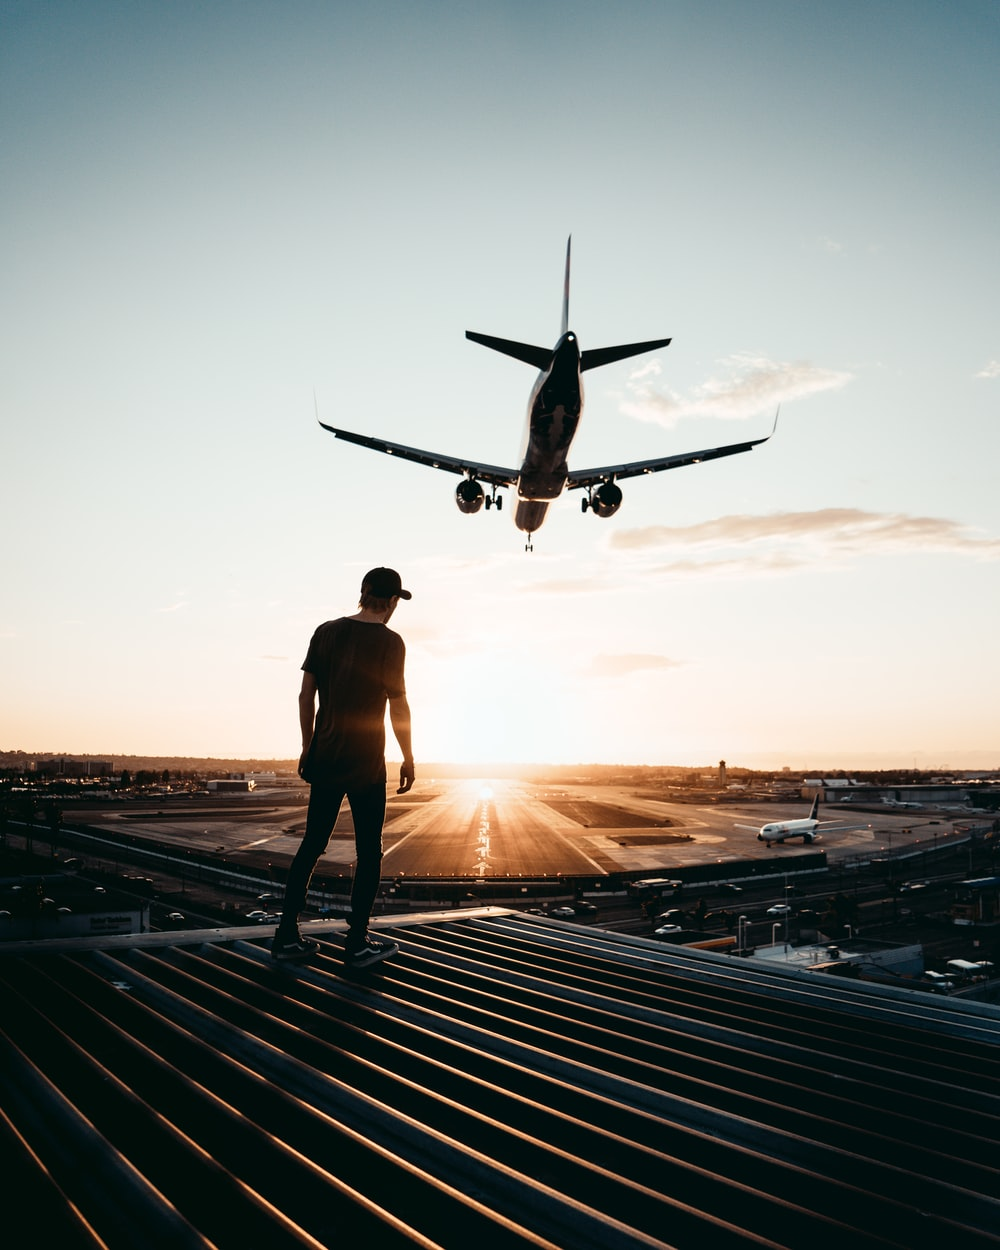 man standing on top of building looking at airplane in the sky during sunset